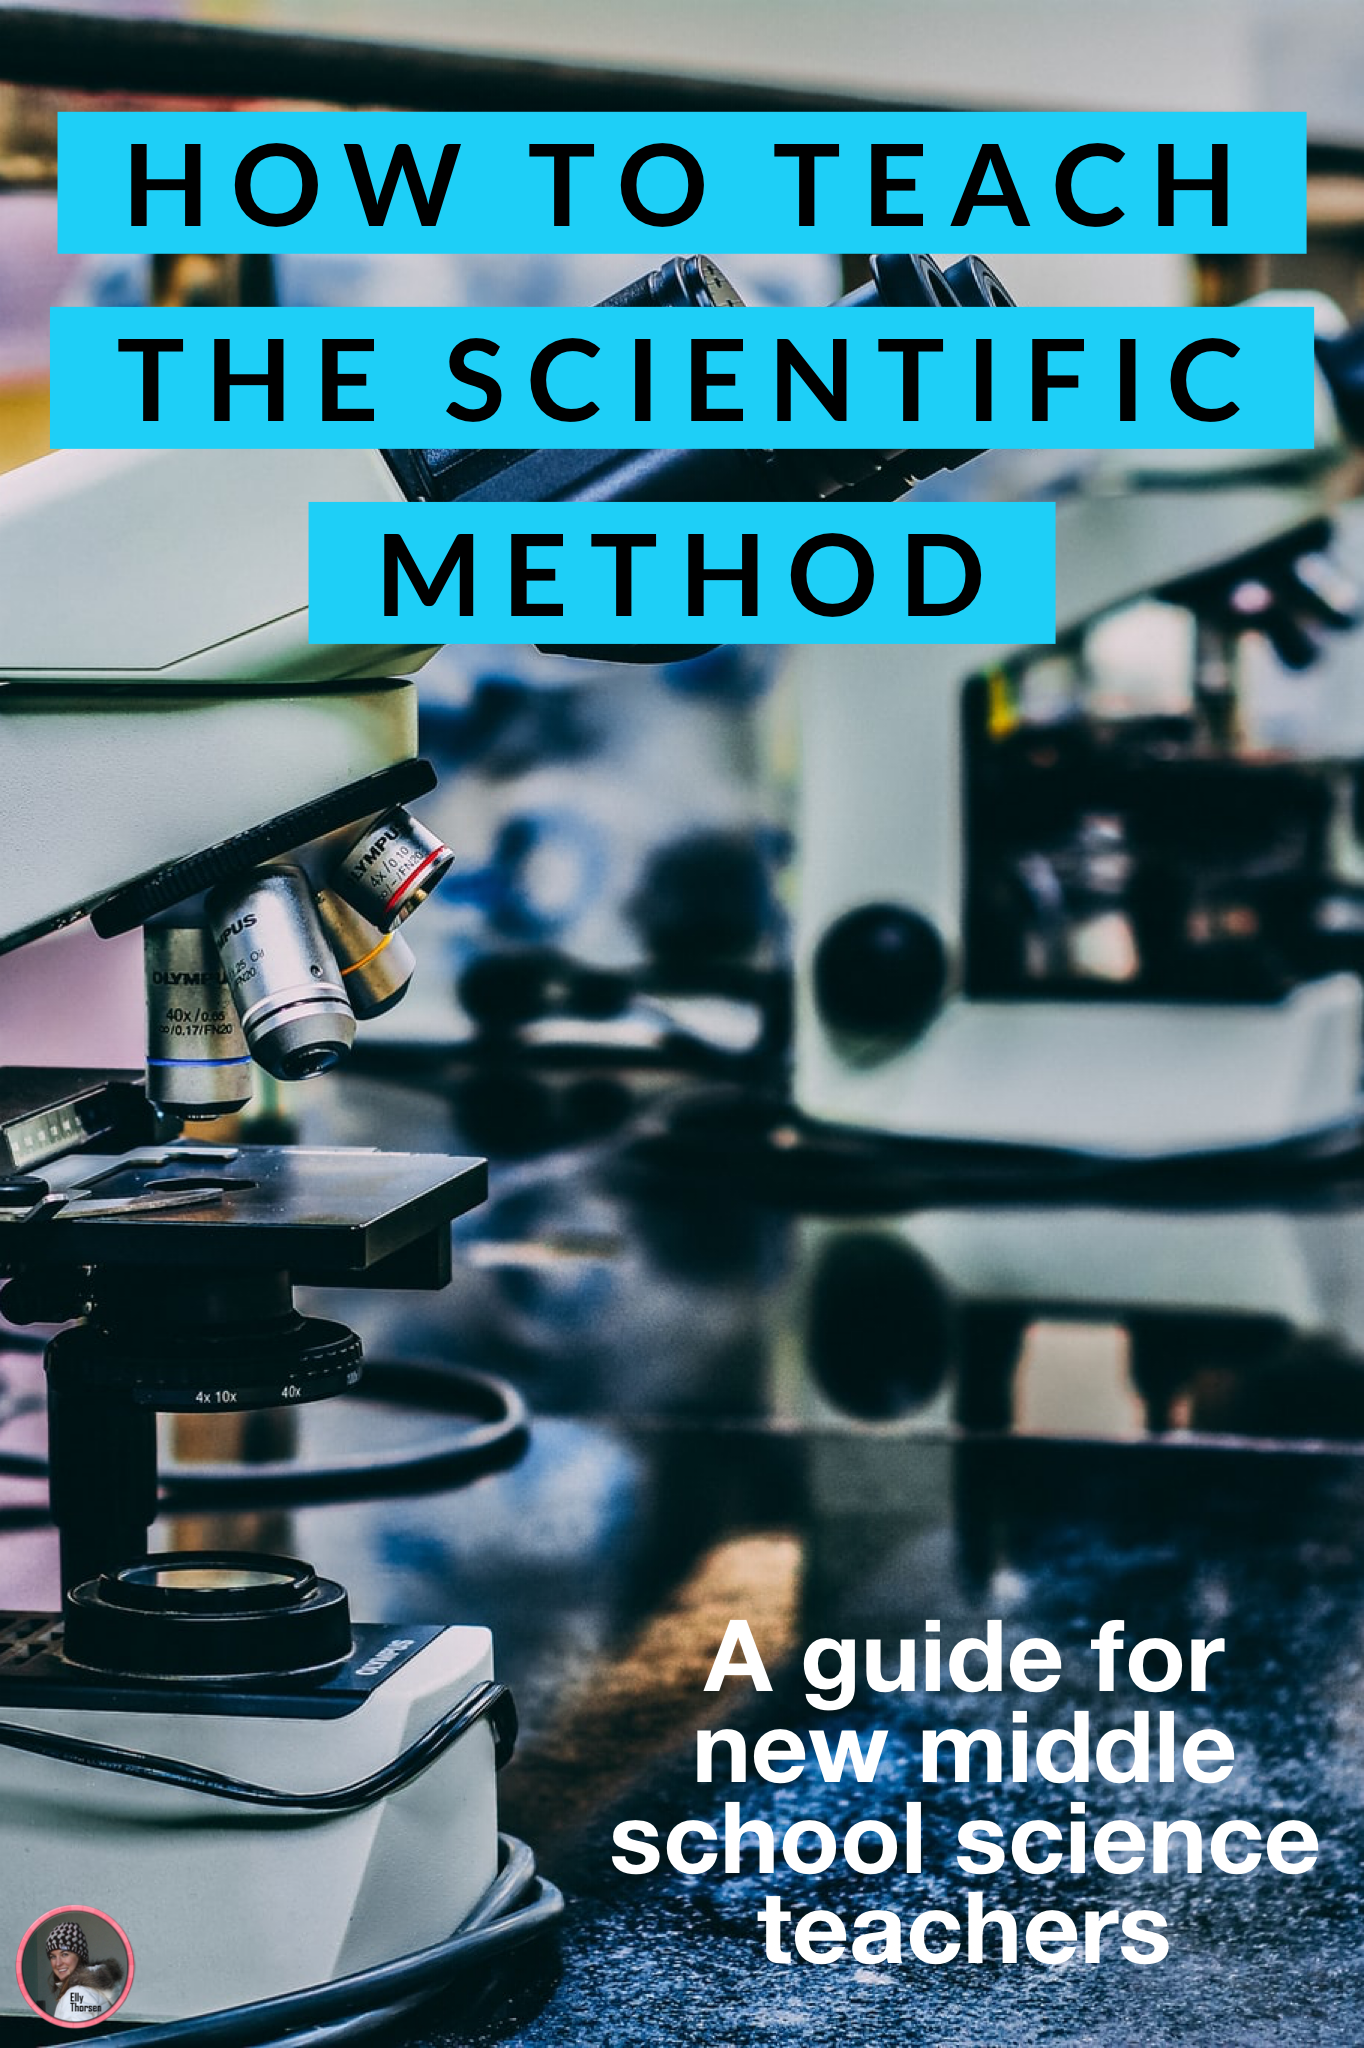 How To Teach The Scientific Method To 7th Graders